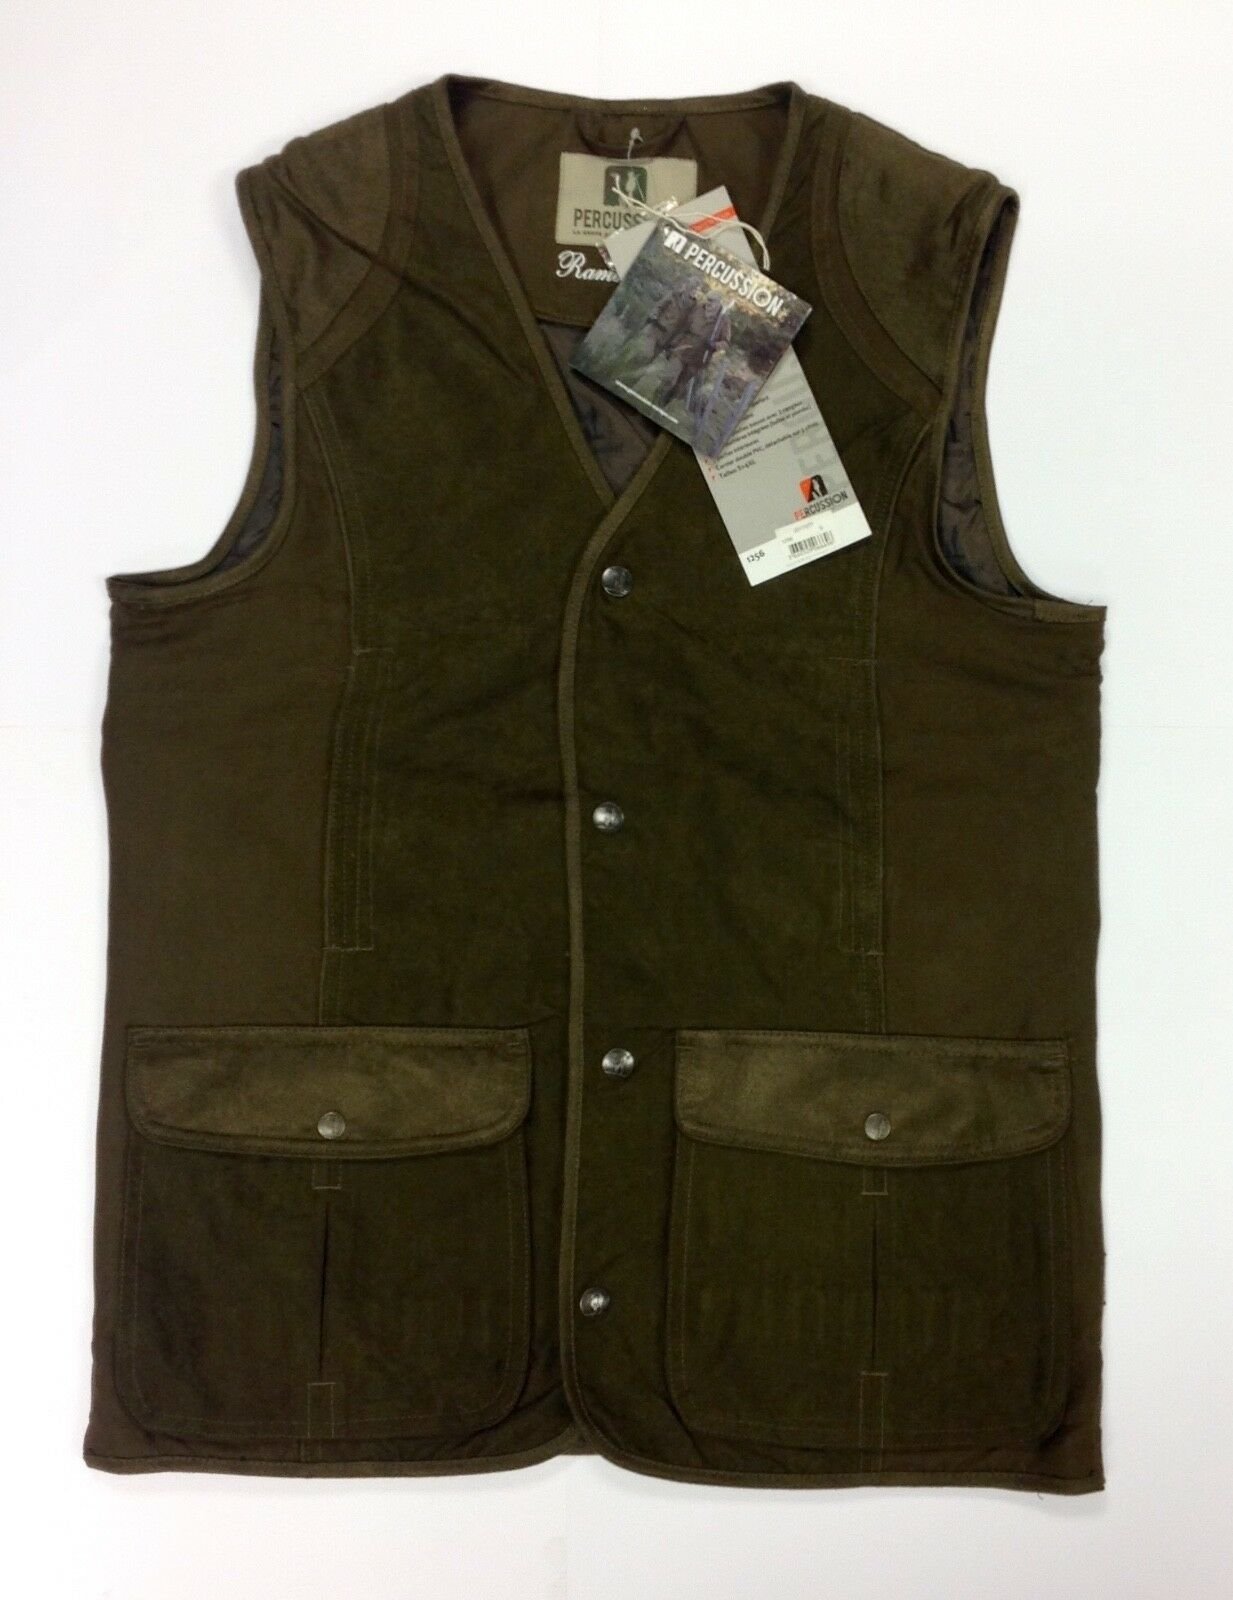 Percussion Rambouillet Hunting Vest Gilet Shooting Fishing Country 2017